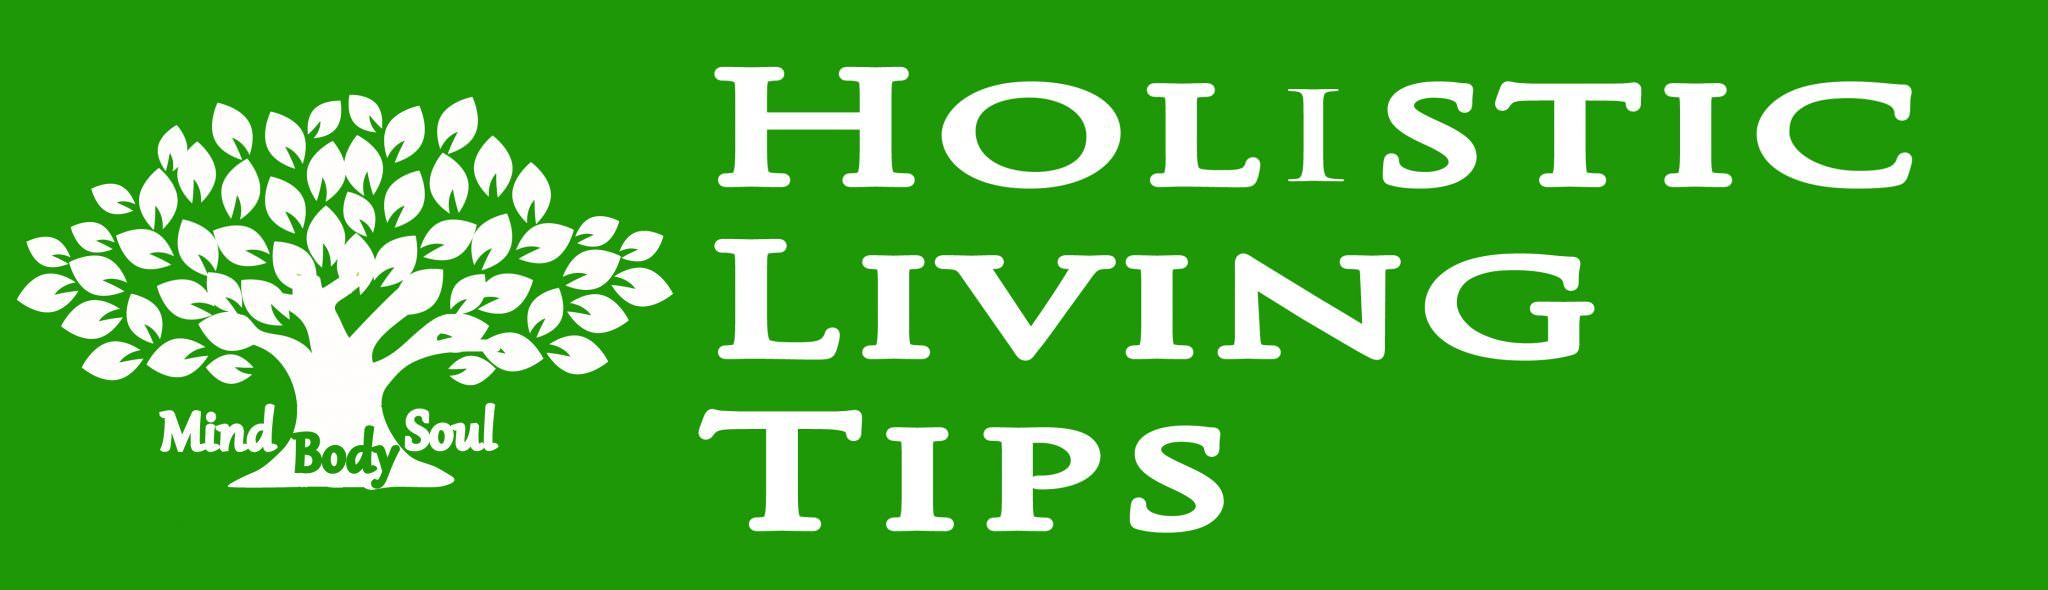 Holistic Living Tips